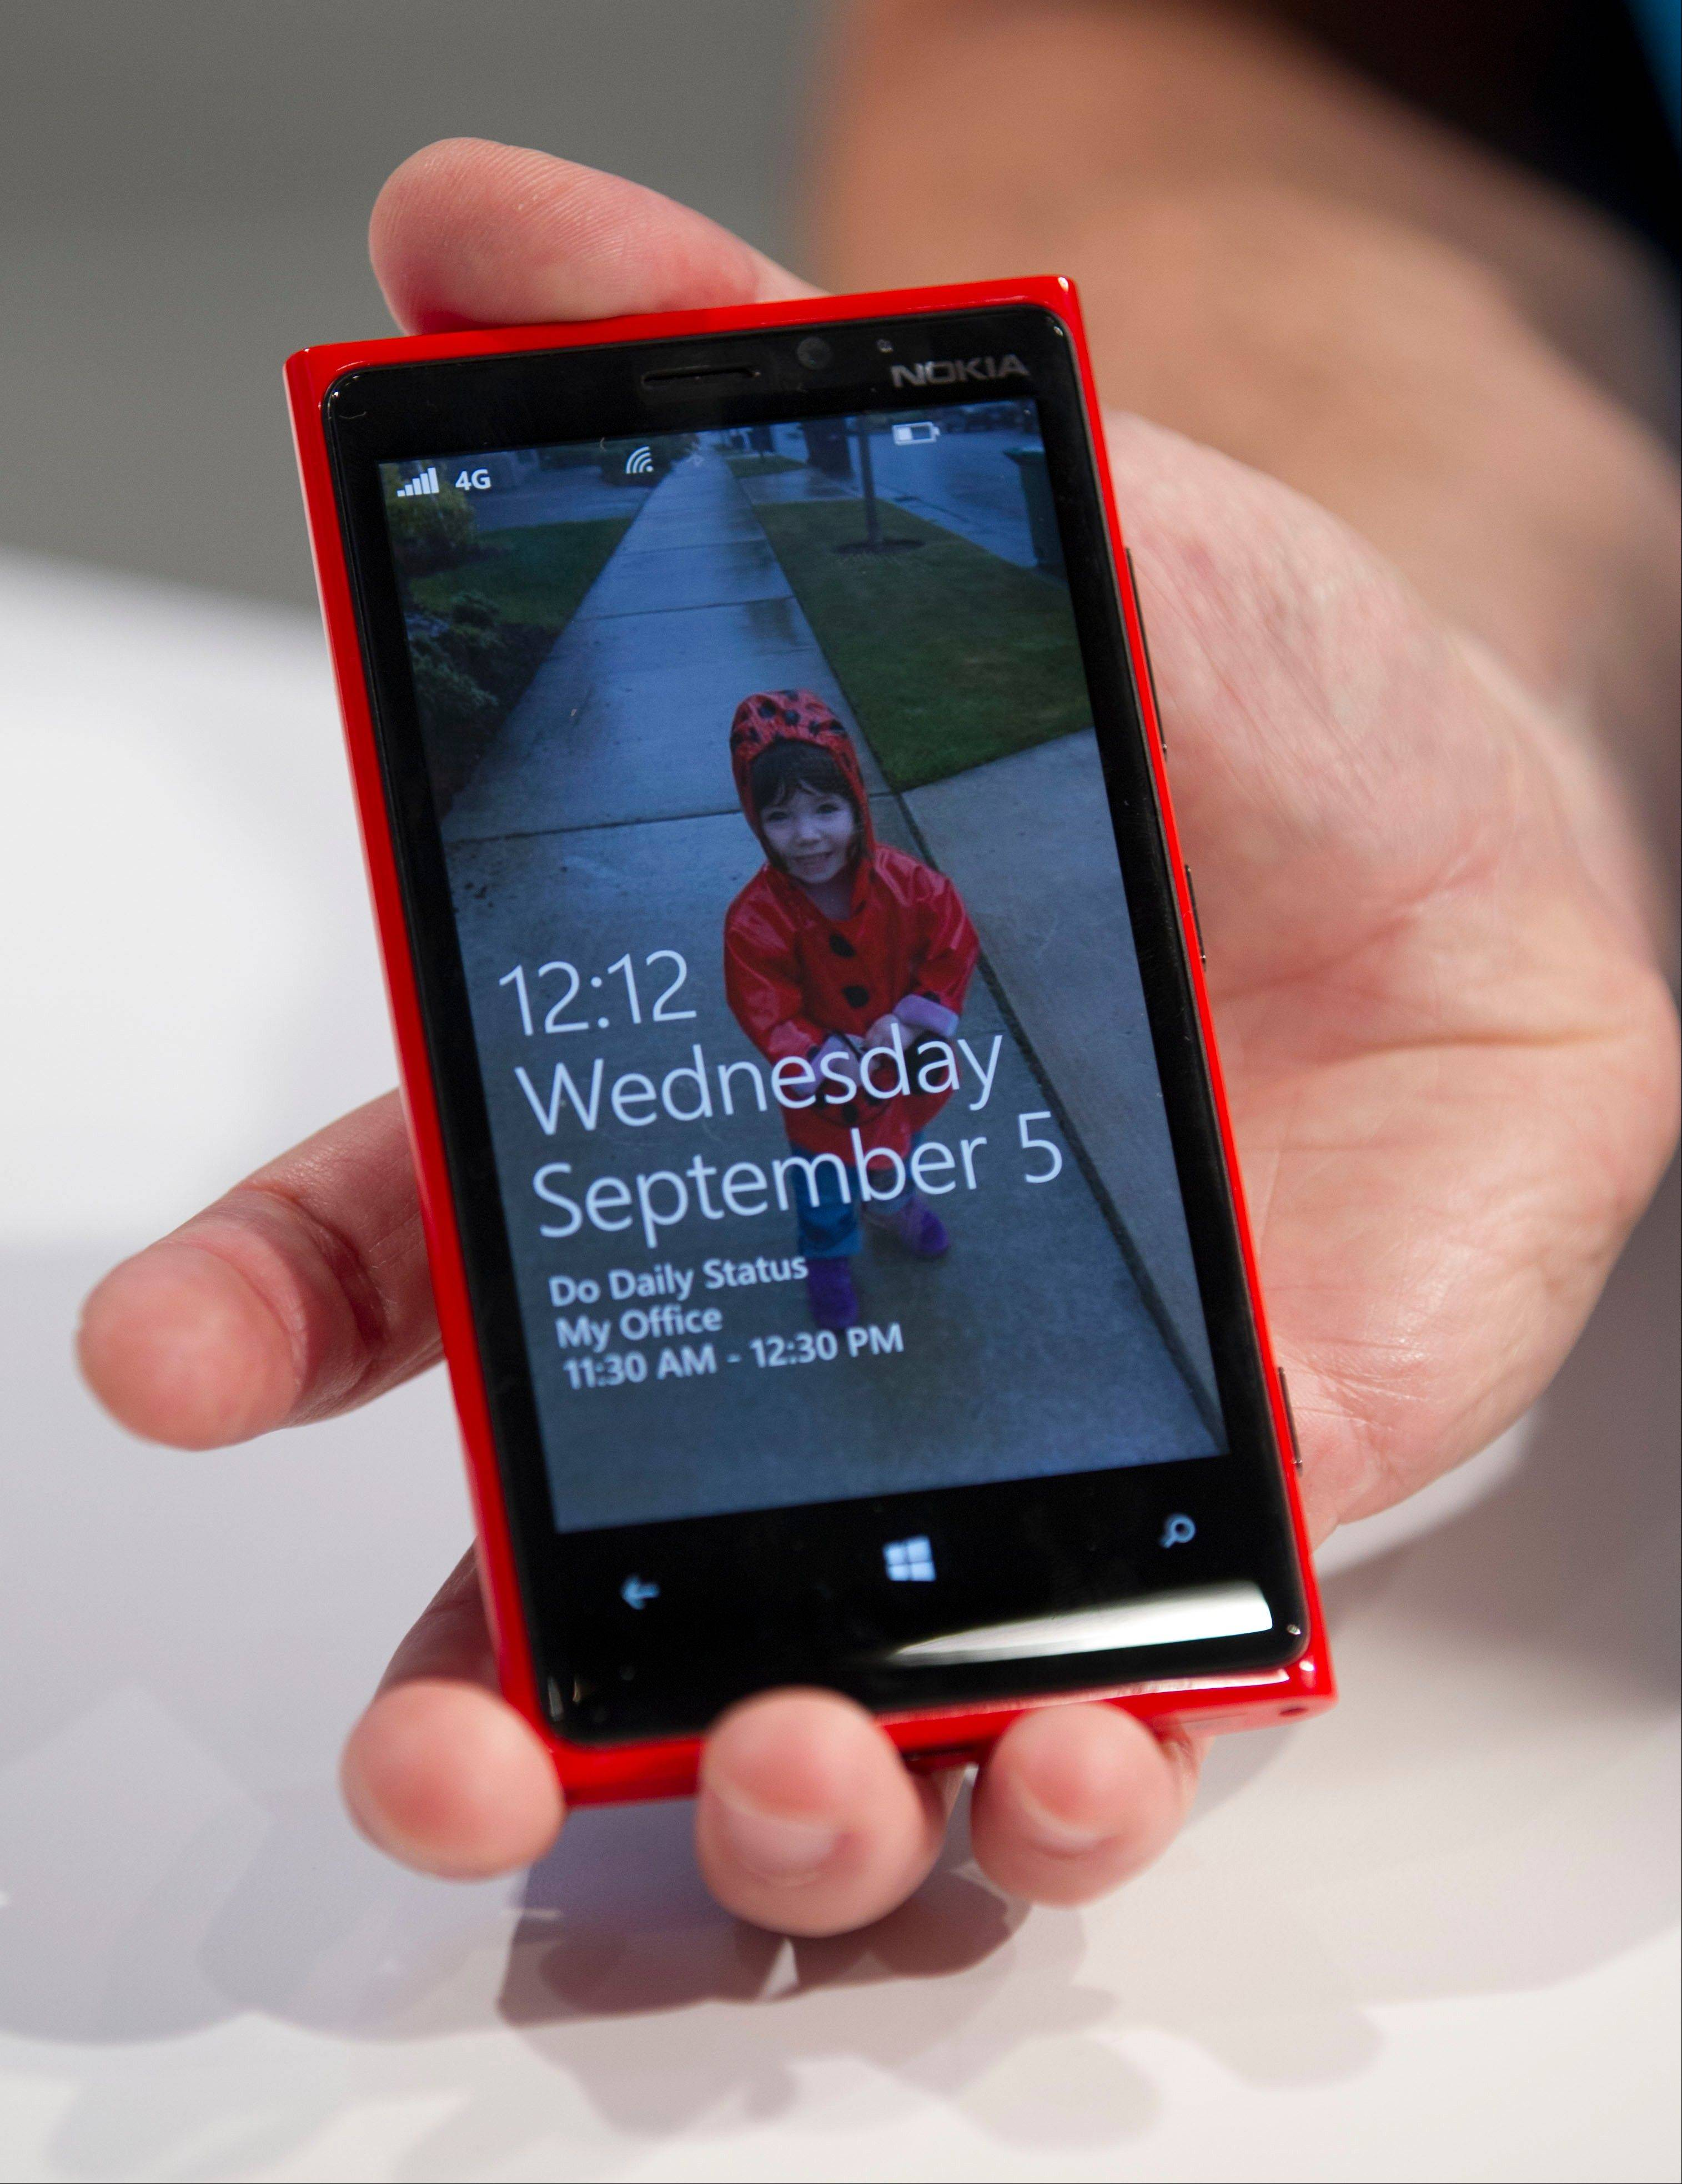 The new Nokia Lumia 920 is displayed during a news conference in New York, U.S., on Wednesday, Sept. 5, 2012. Nokia Oyj unveiled two smartphones using Microsoft Corp.'s new Windows Phone software, betting on the devices to win back sales lost to the iPhone and Android handset makers.